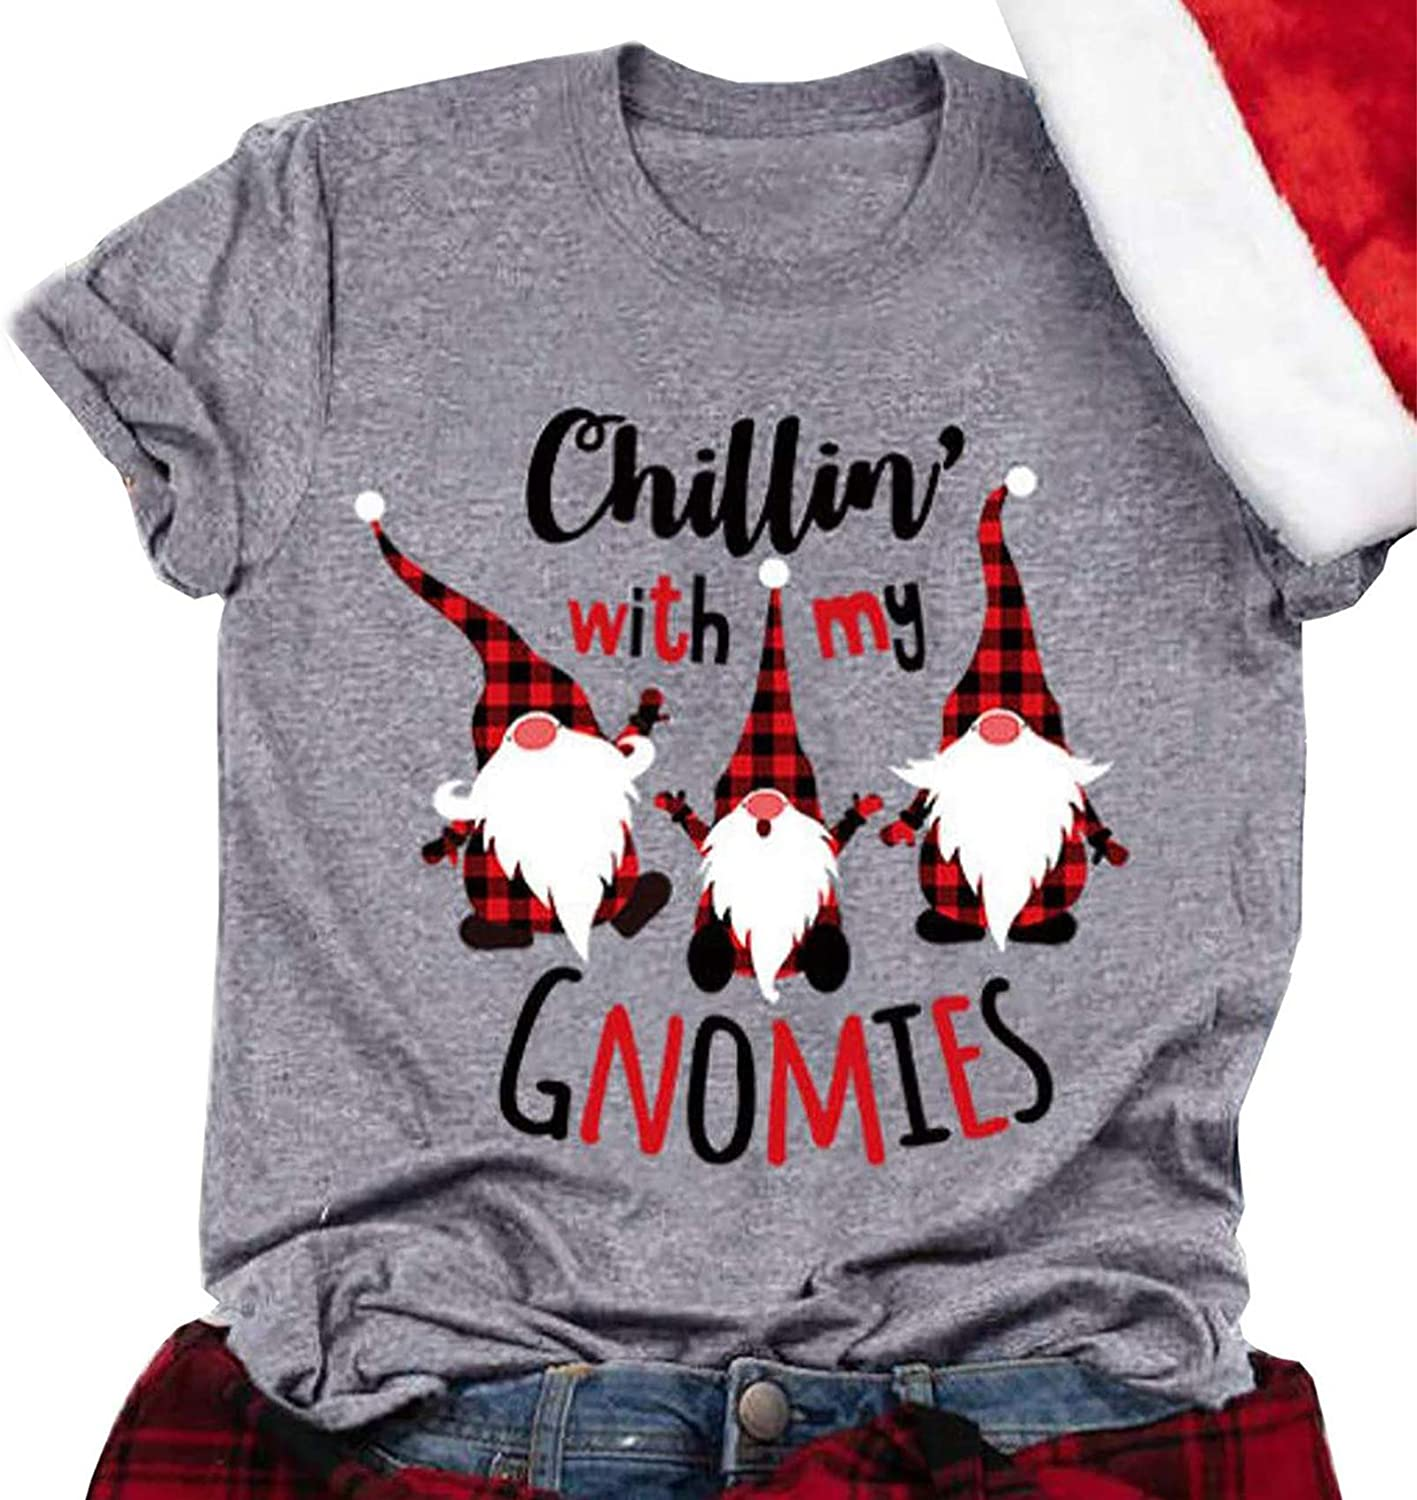 Christmas Chillin' quality assurance with My Gnomies Factory outlet Plaid Cute T-Shirt Women Gnom